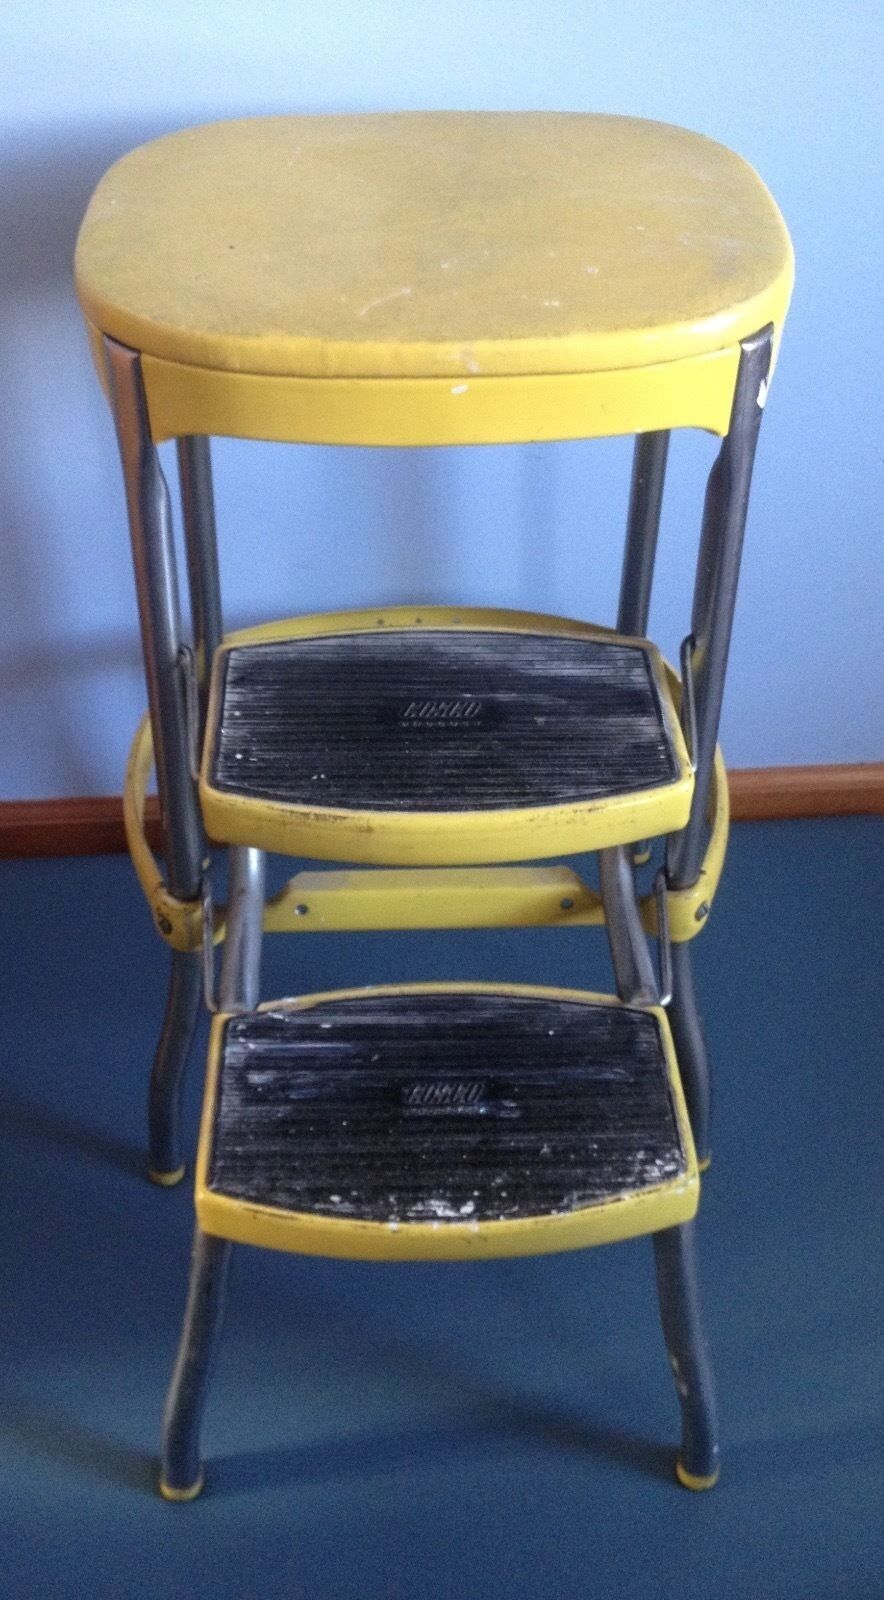 Vintage Cosco Step Stool Yellow Retro Metal Pull Out Steps